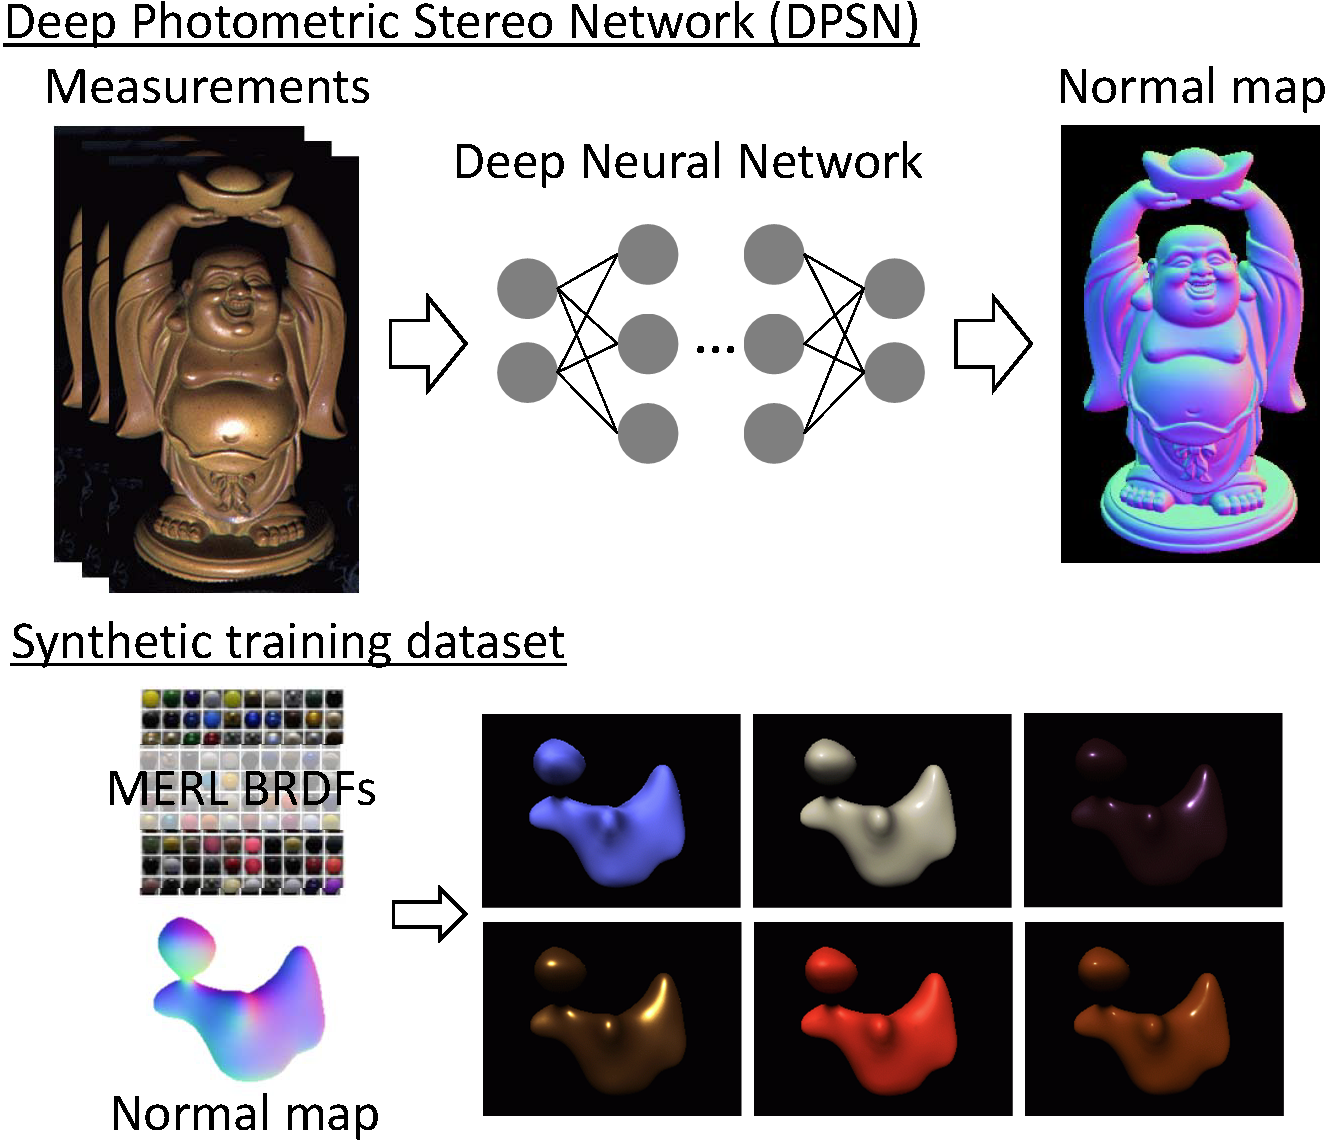 Deep Photometric Stereo Network